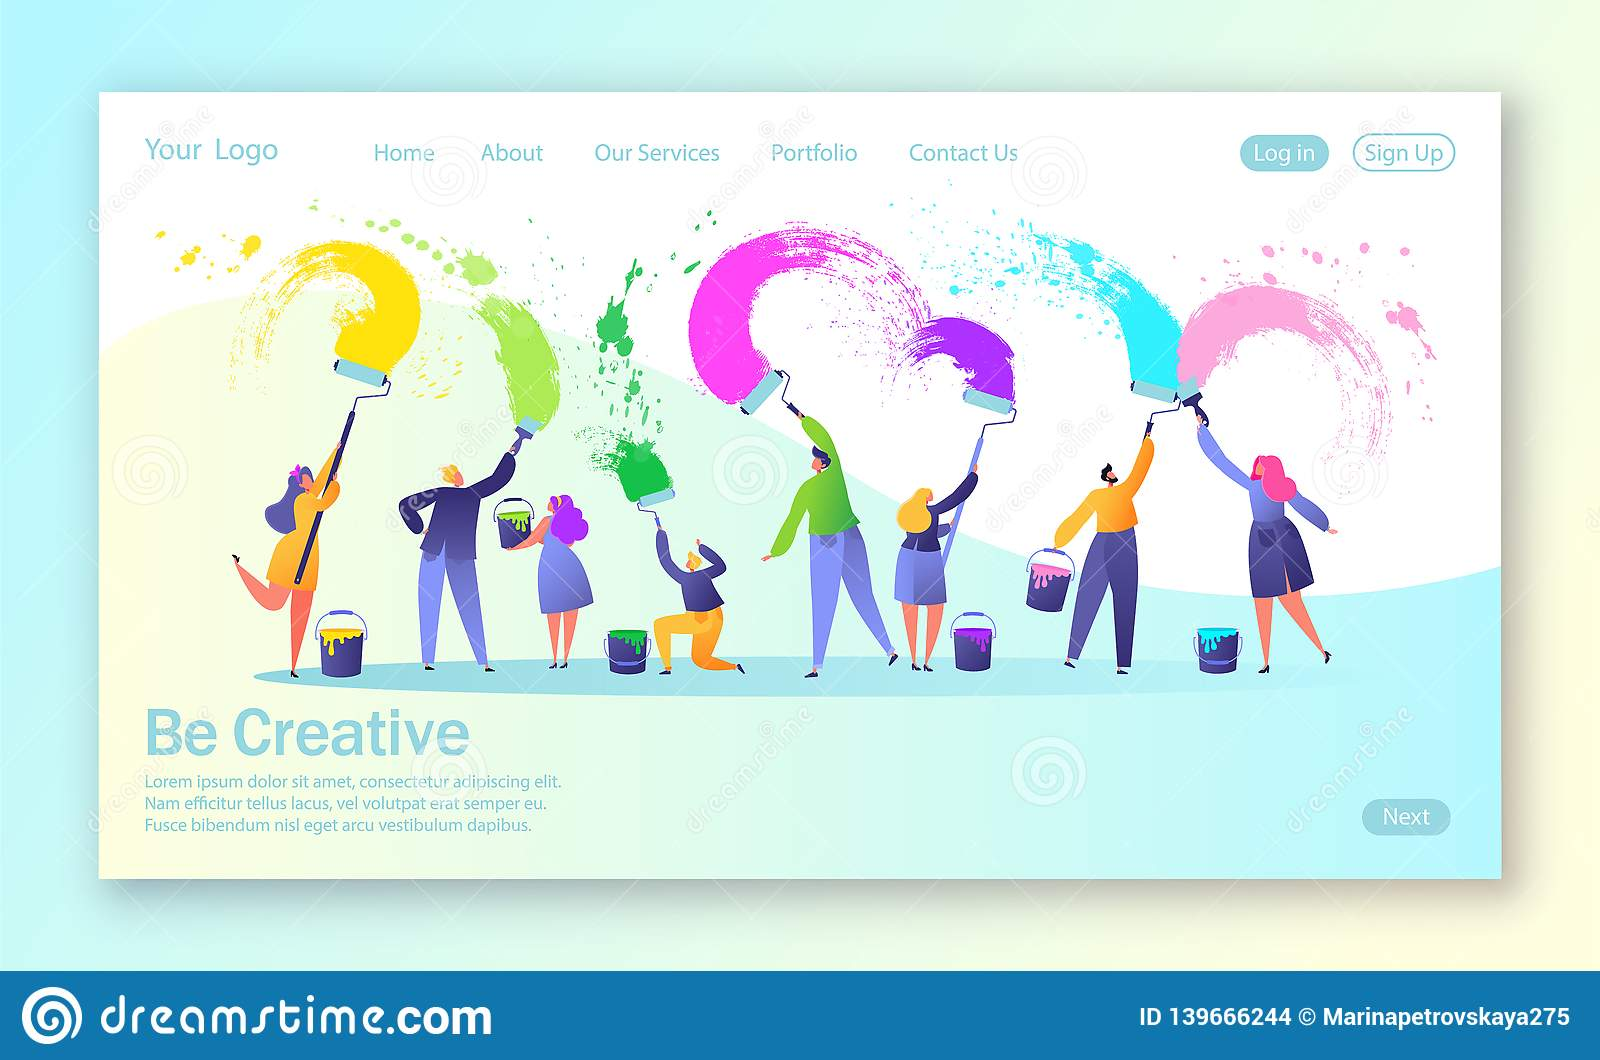 Concept of landing page with business creative teamwork. Creative people characters paints with brushes and paint rollers big whit